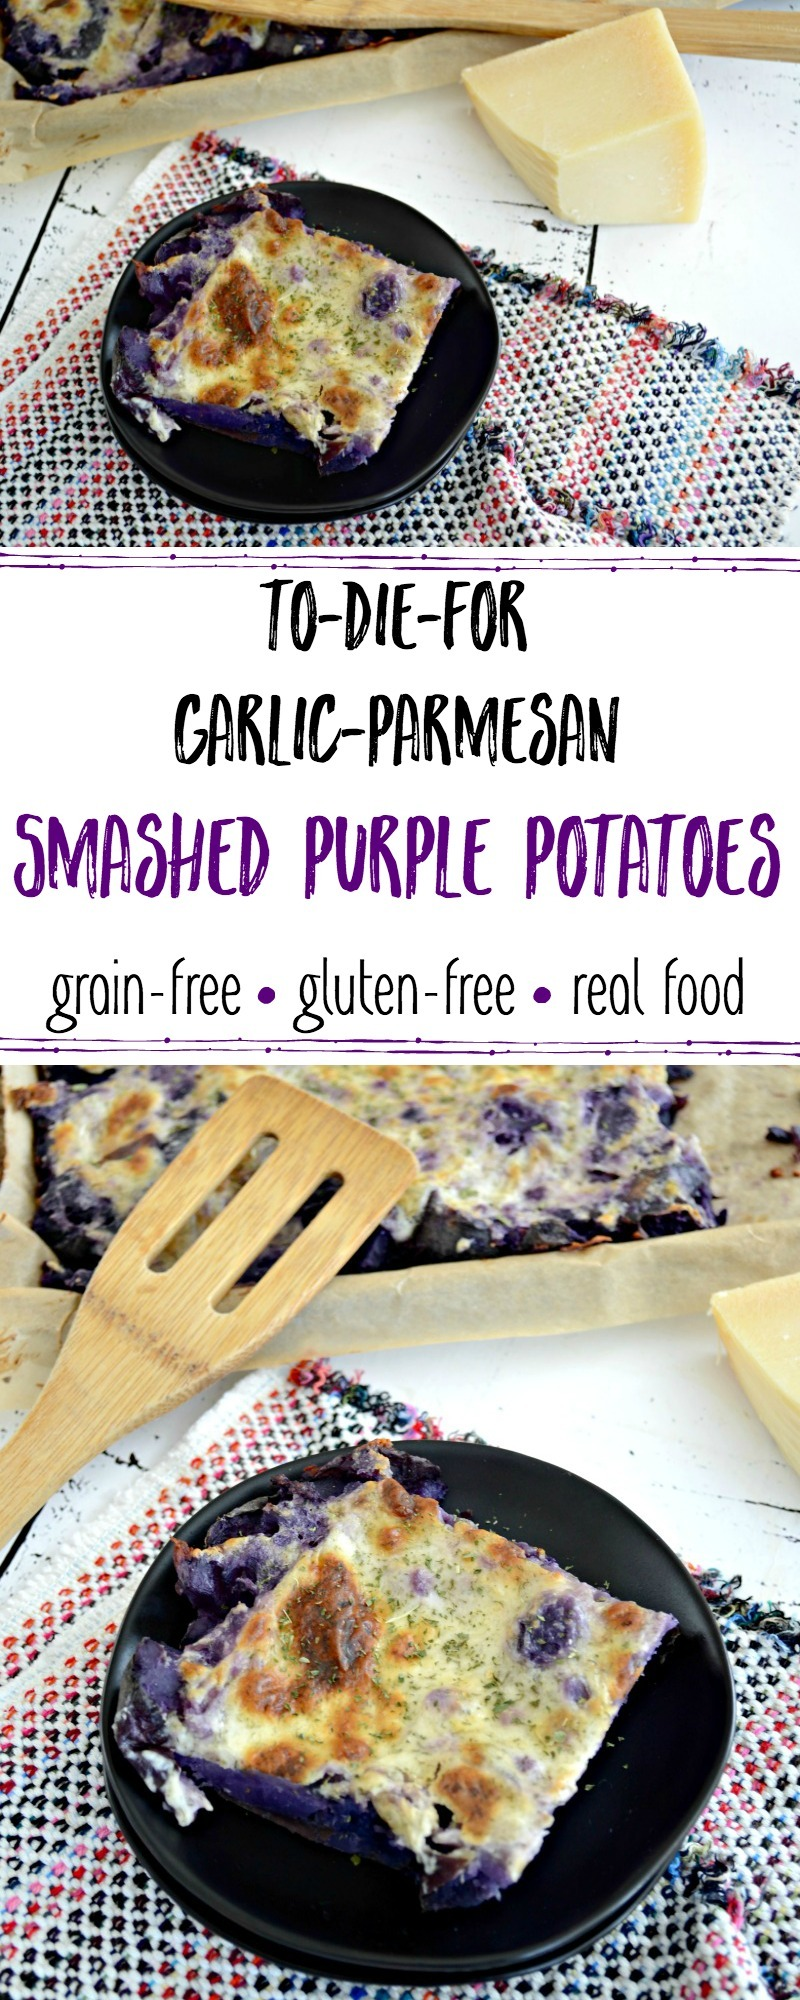 cheesy purple potatoes on black plate with wooden spatula